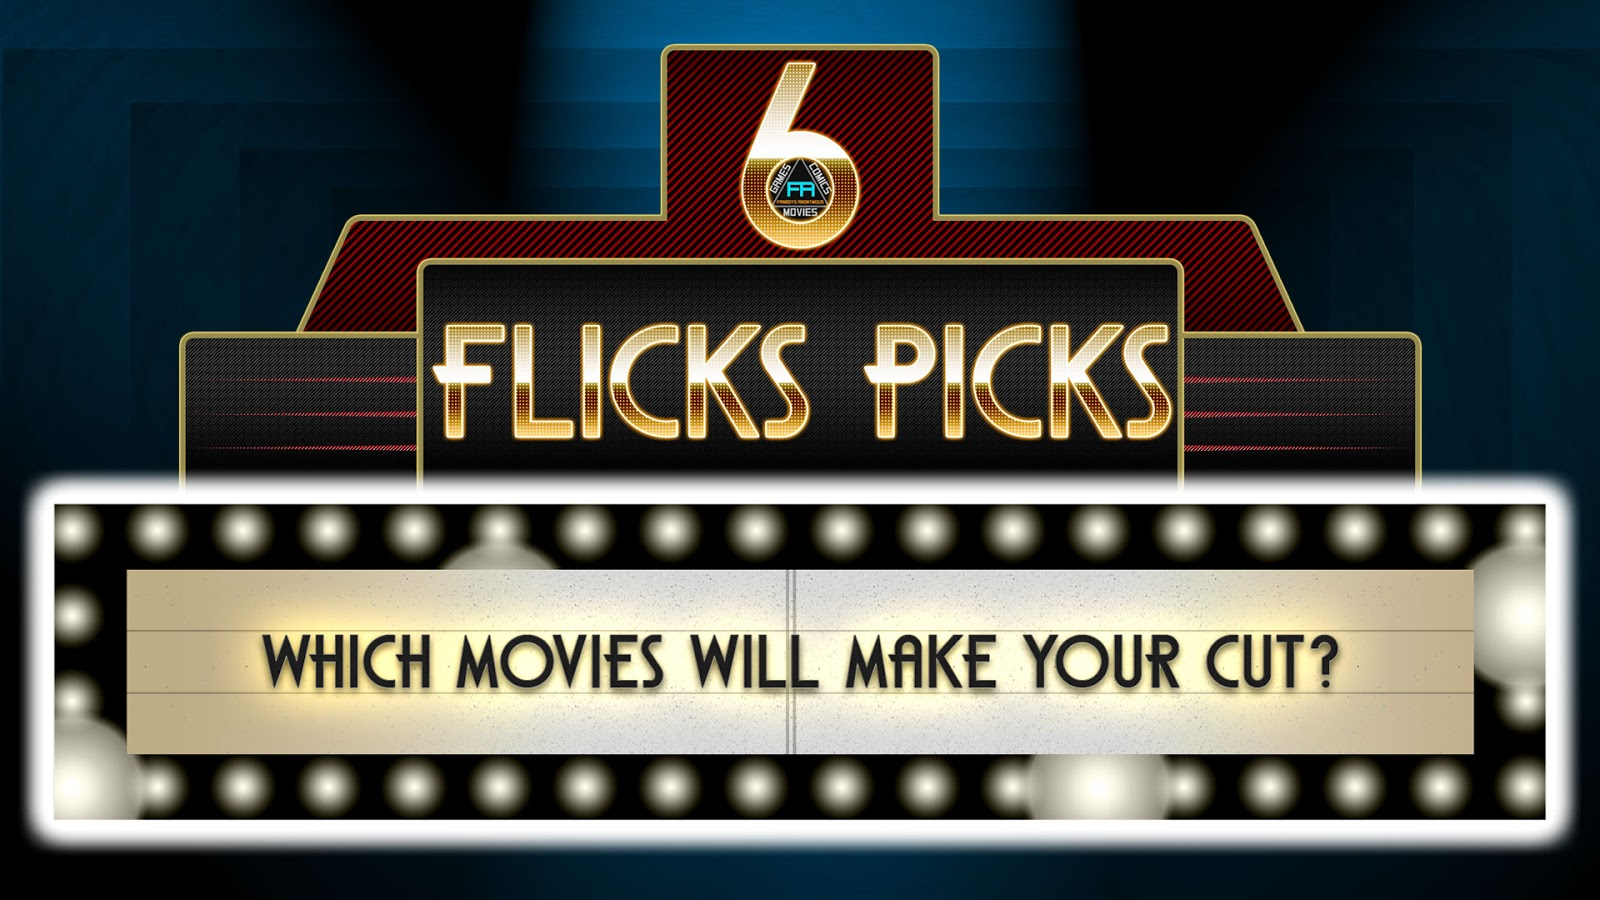 What movies are coming out August 2017 6 Flicks Picks